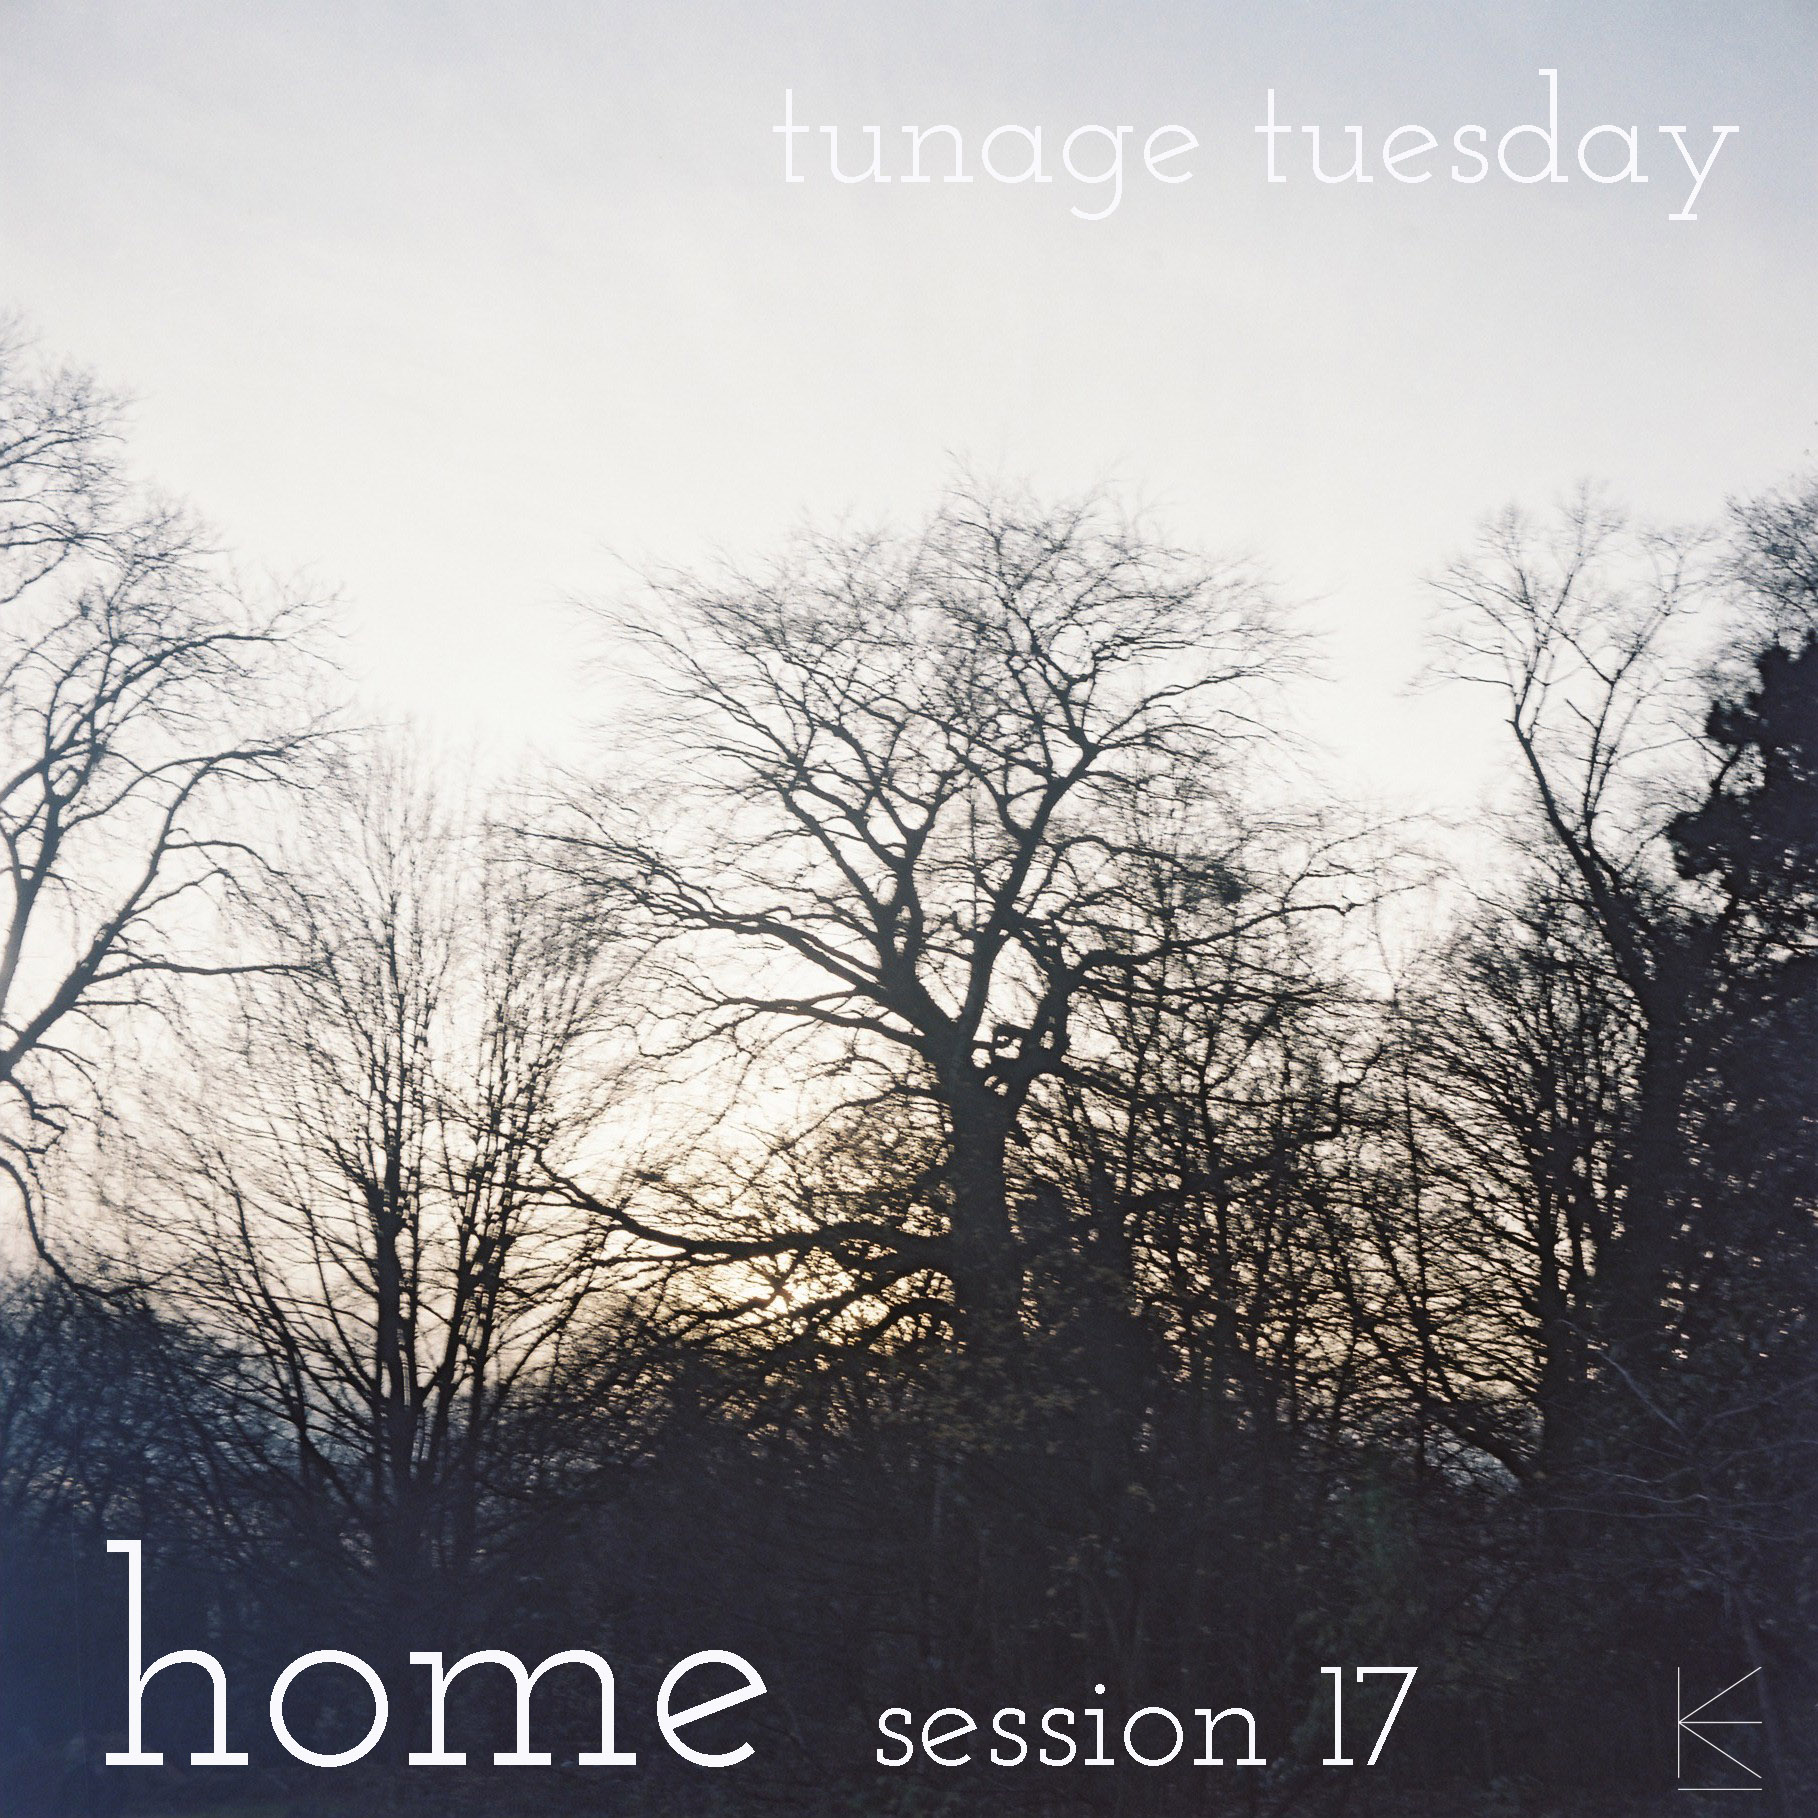 home session 17.jpg